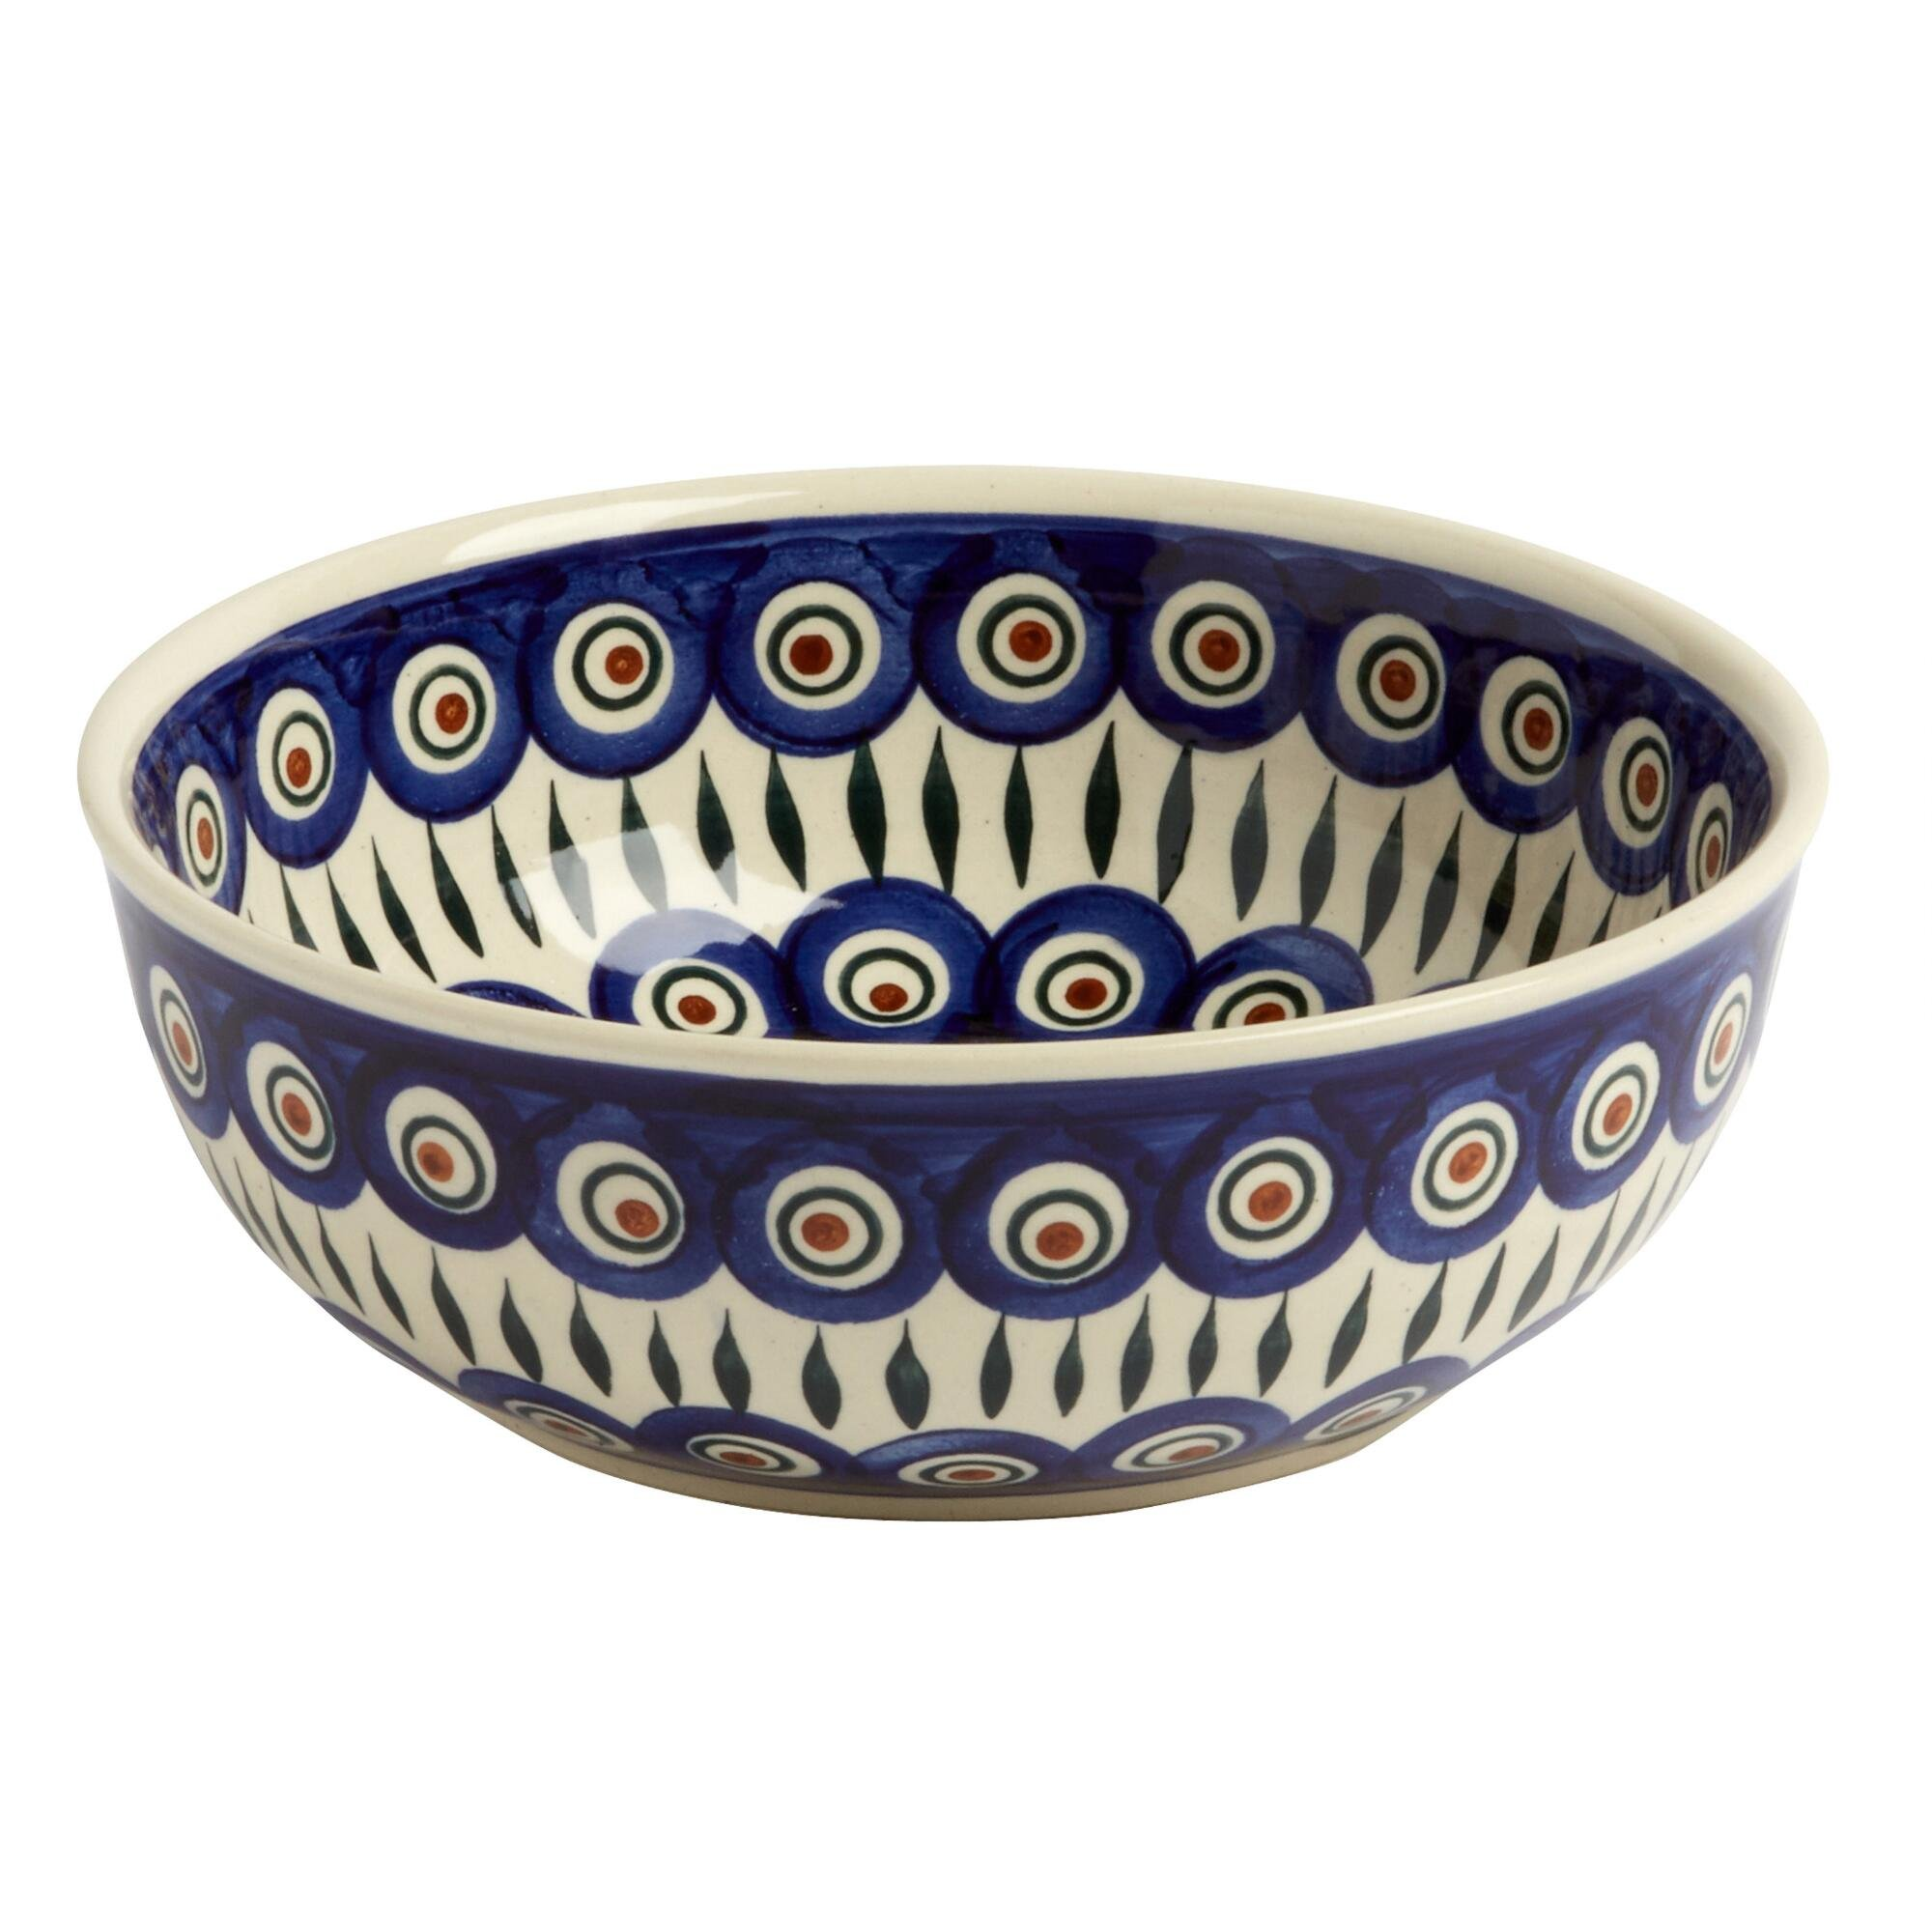 Polish Pottery Peacock Feathers Handmade Mixing Fruit Bowl, 8.25-Inch